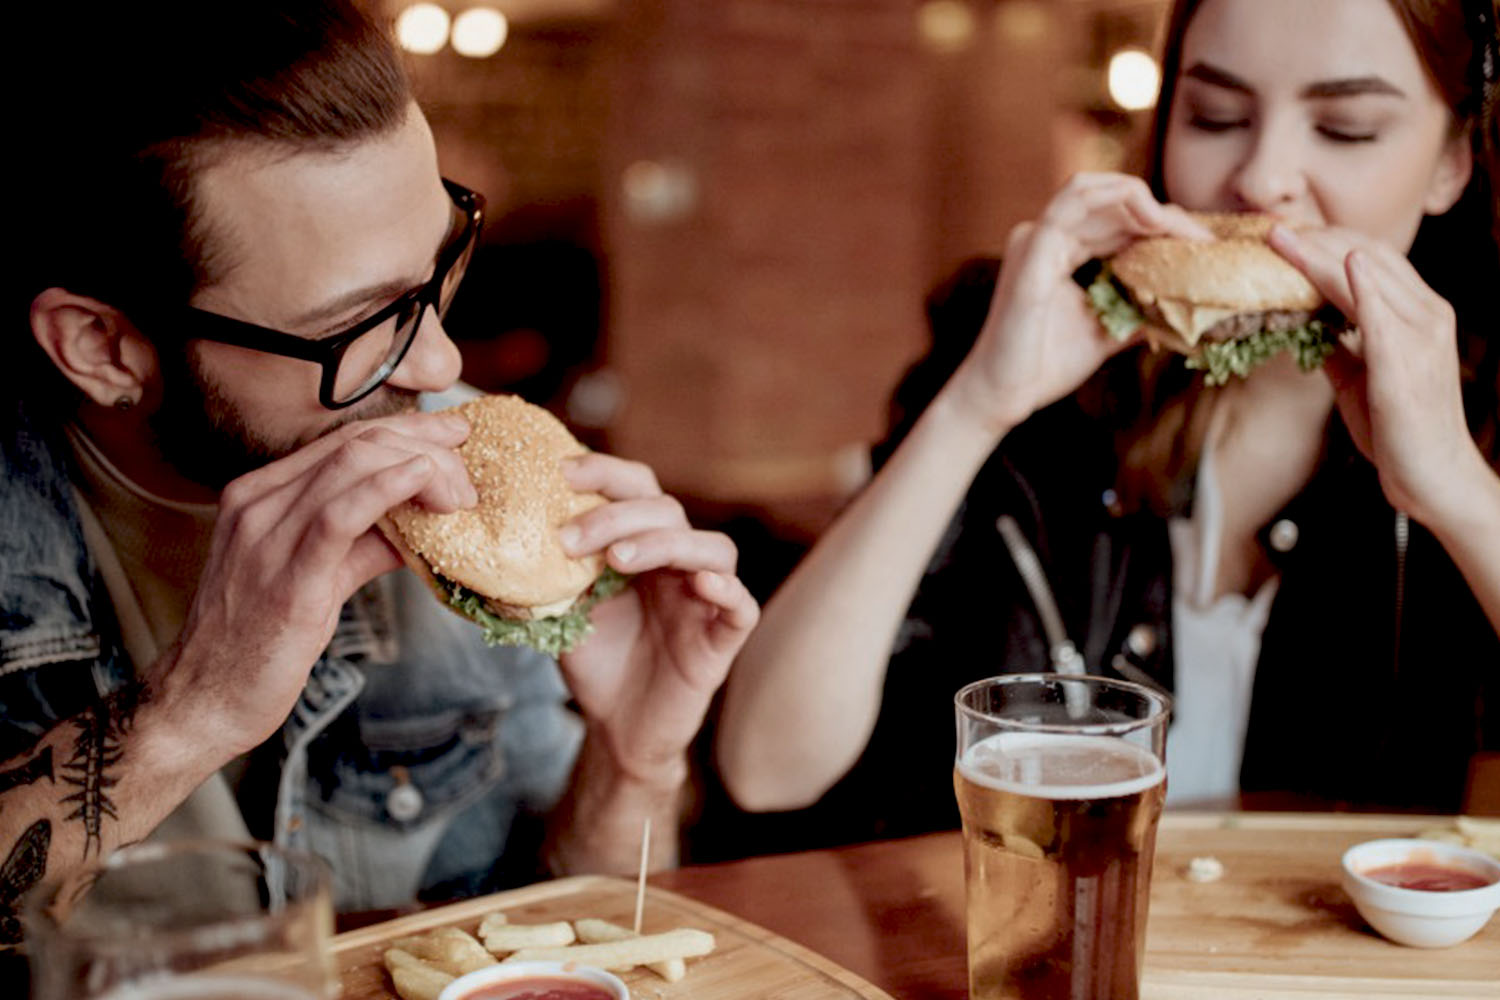 meat & Burgers - @meatlovers